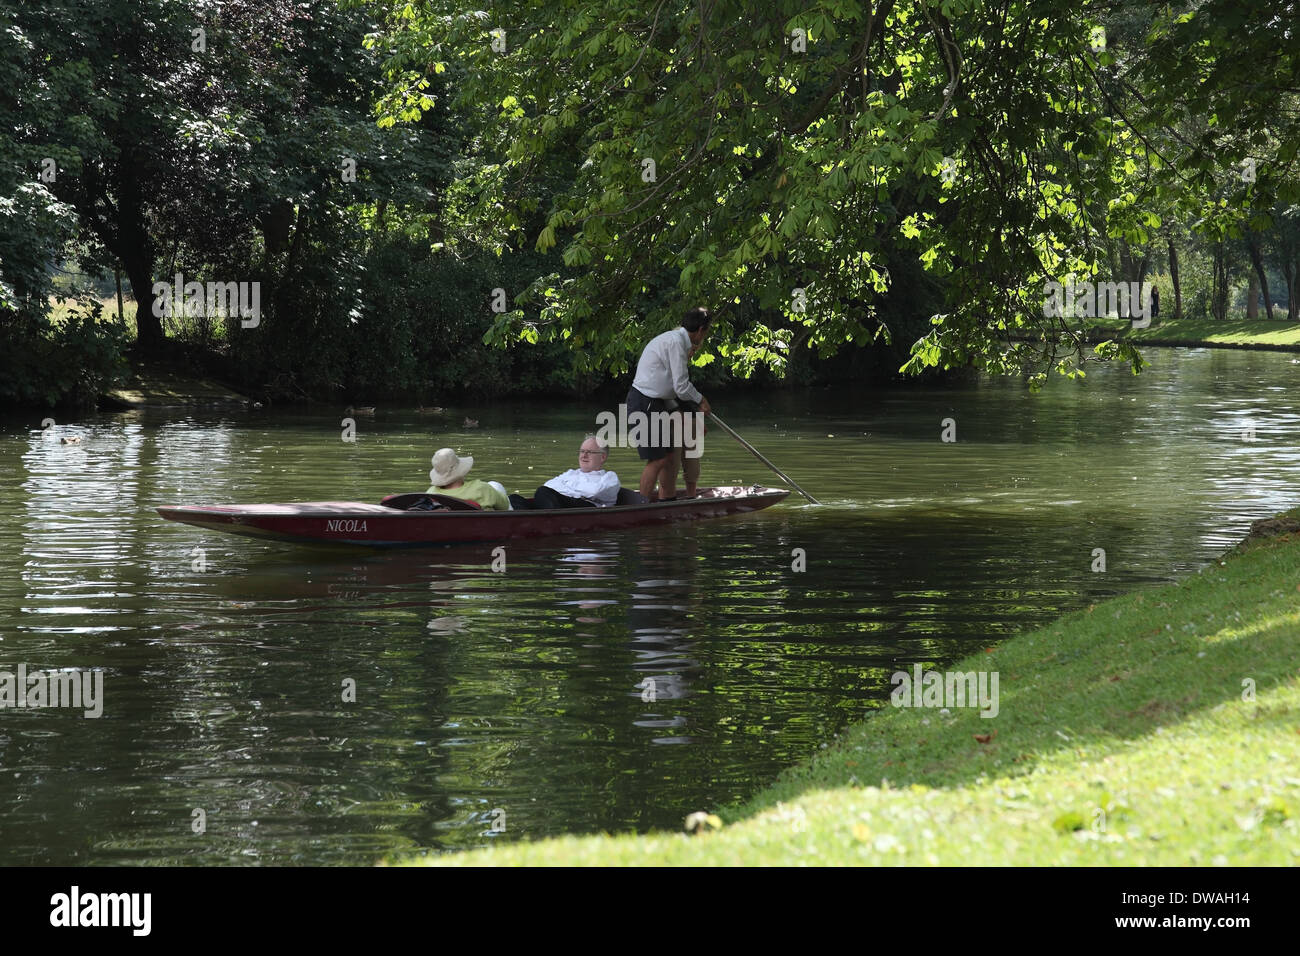 A family punting on the Thames in Oxford UK. - Stock Image